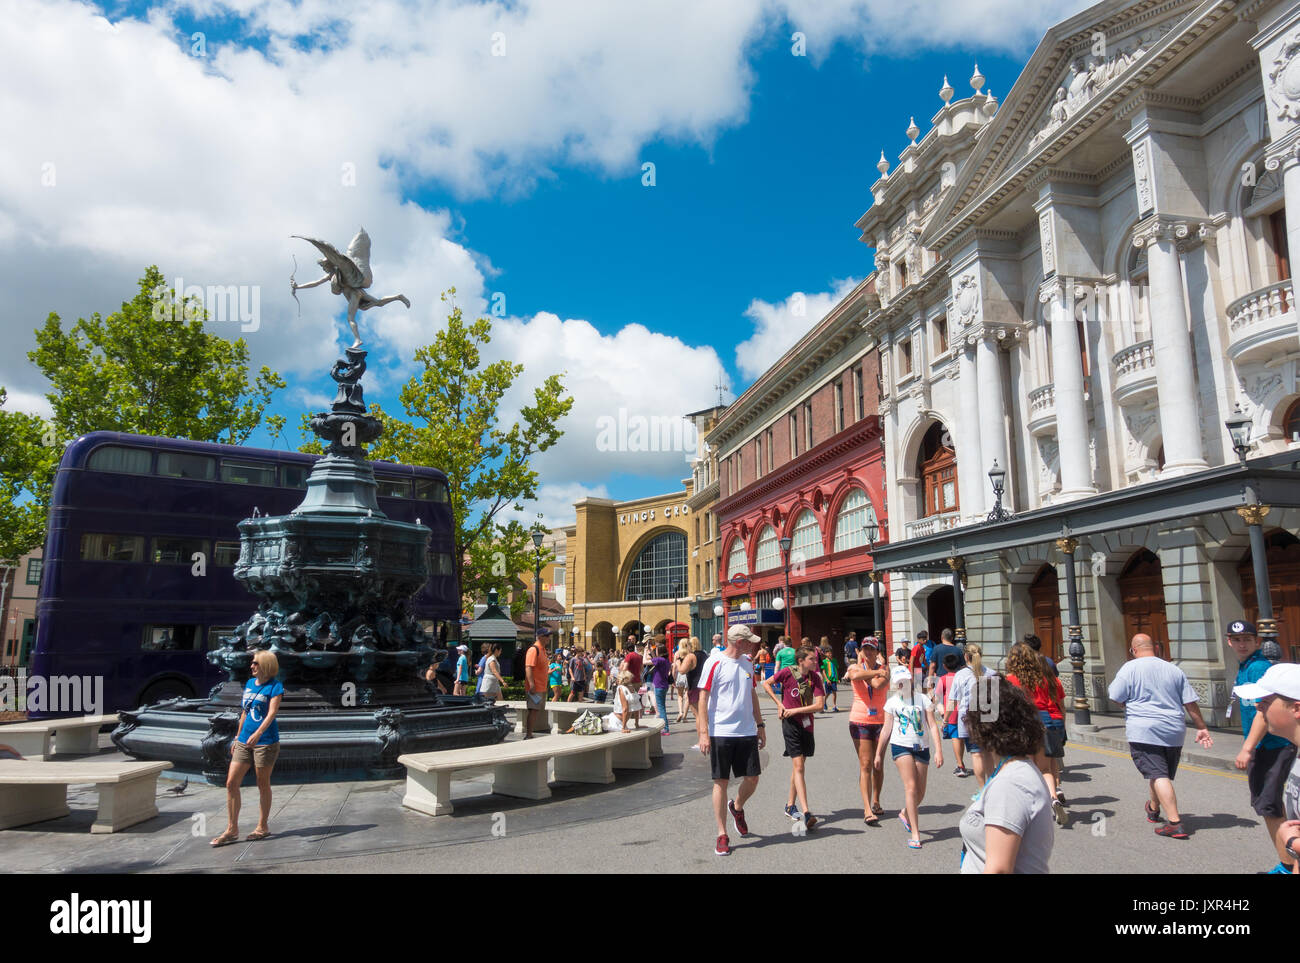 The Knight Bus and Shaftesbury Memorial Fountain in Universal Studios, Orlando, Florida. Stock Photo